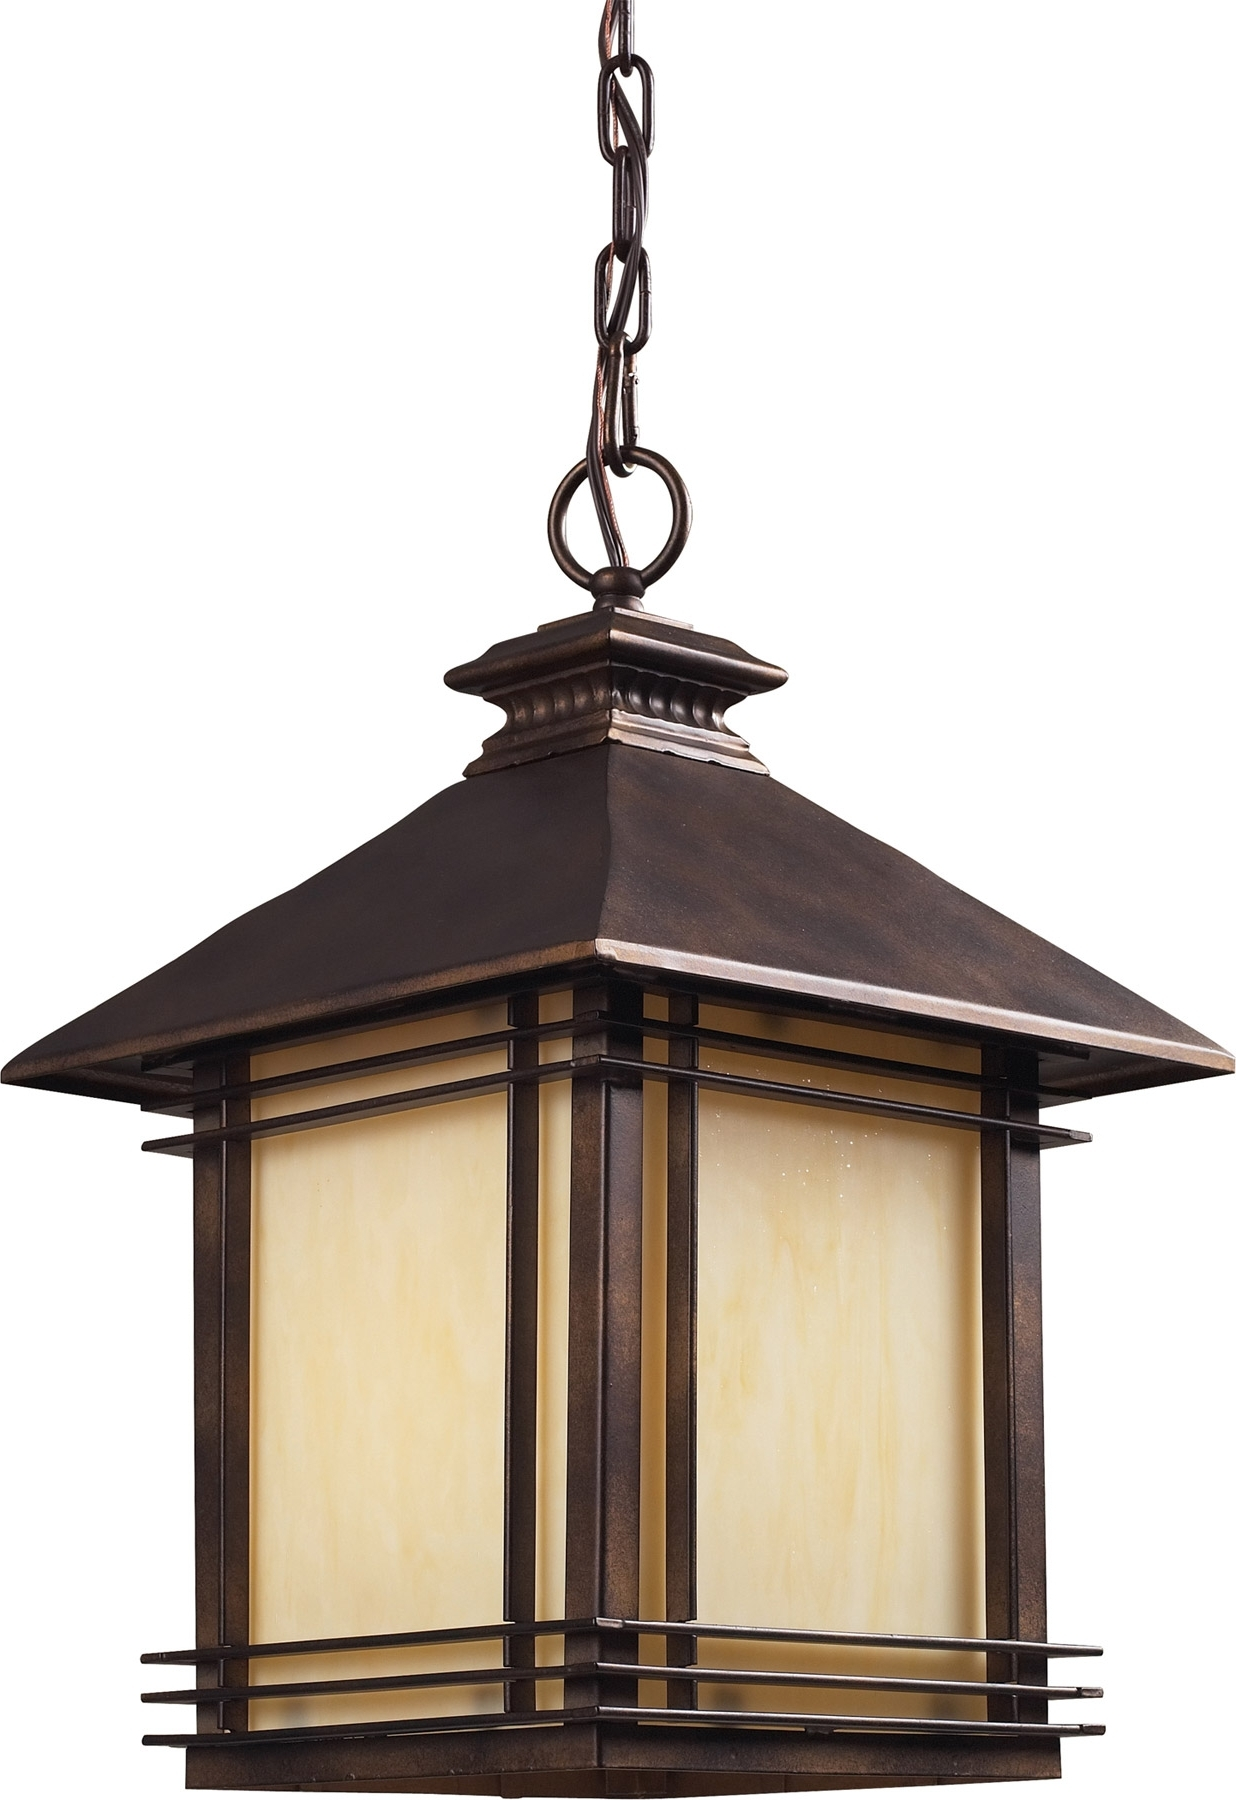 Lighting 42103/1 Blackwell Outdoor Hanging Lantern Within Most Up To Date Indoor Outdoor Hanging Lights (Gallery 17 of 20)